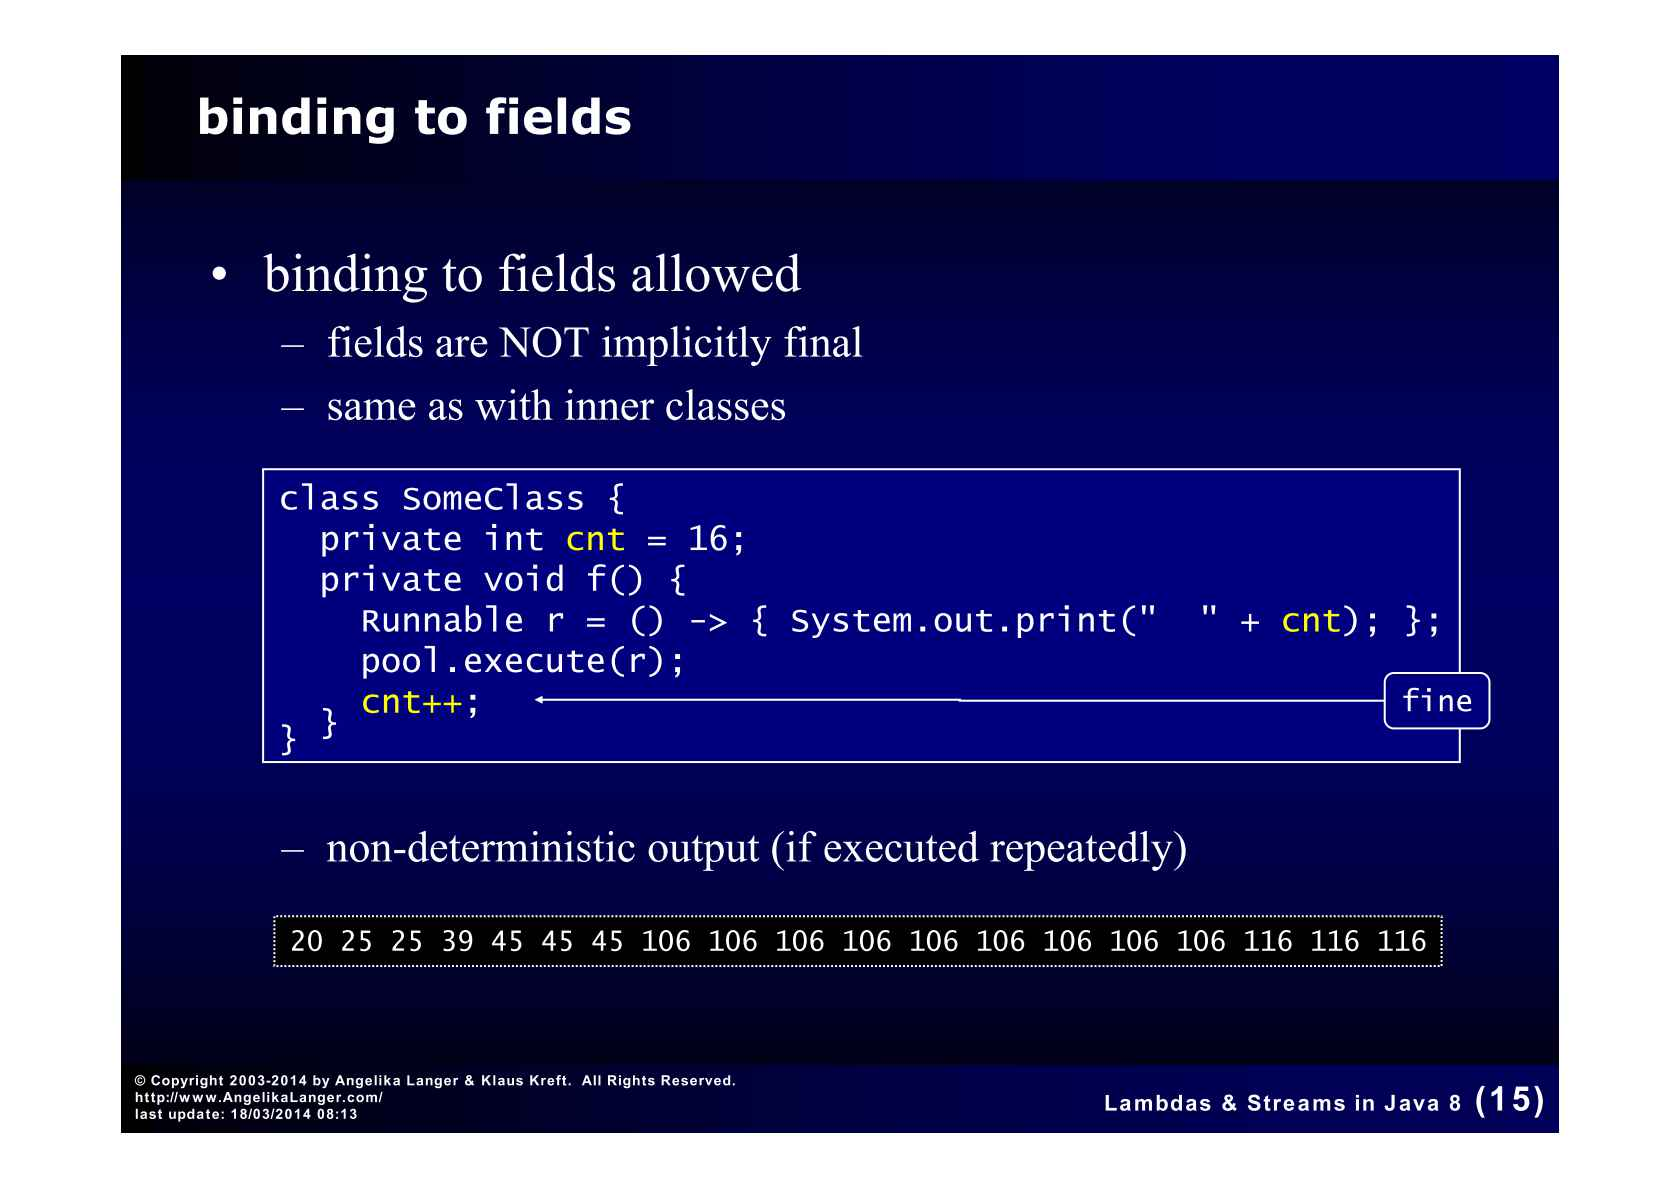 Lambdas and Streams in Java 8